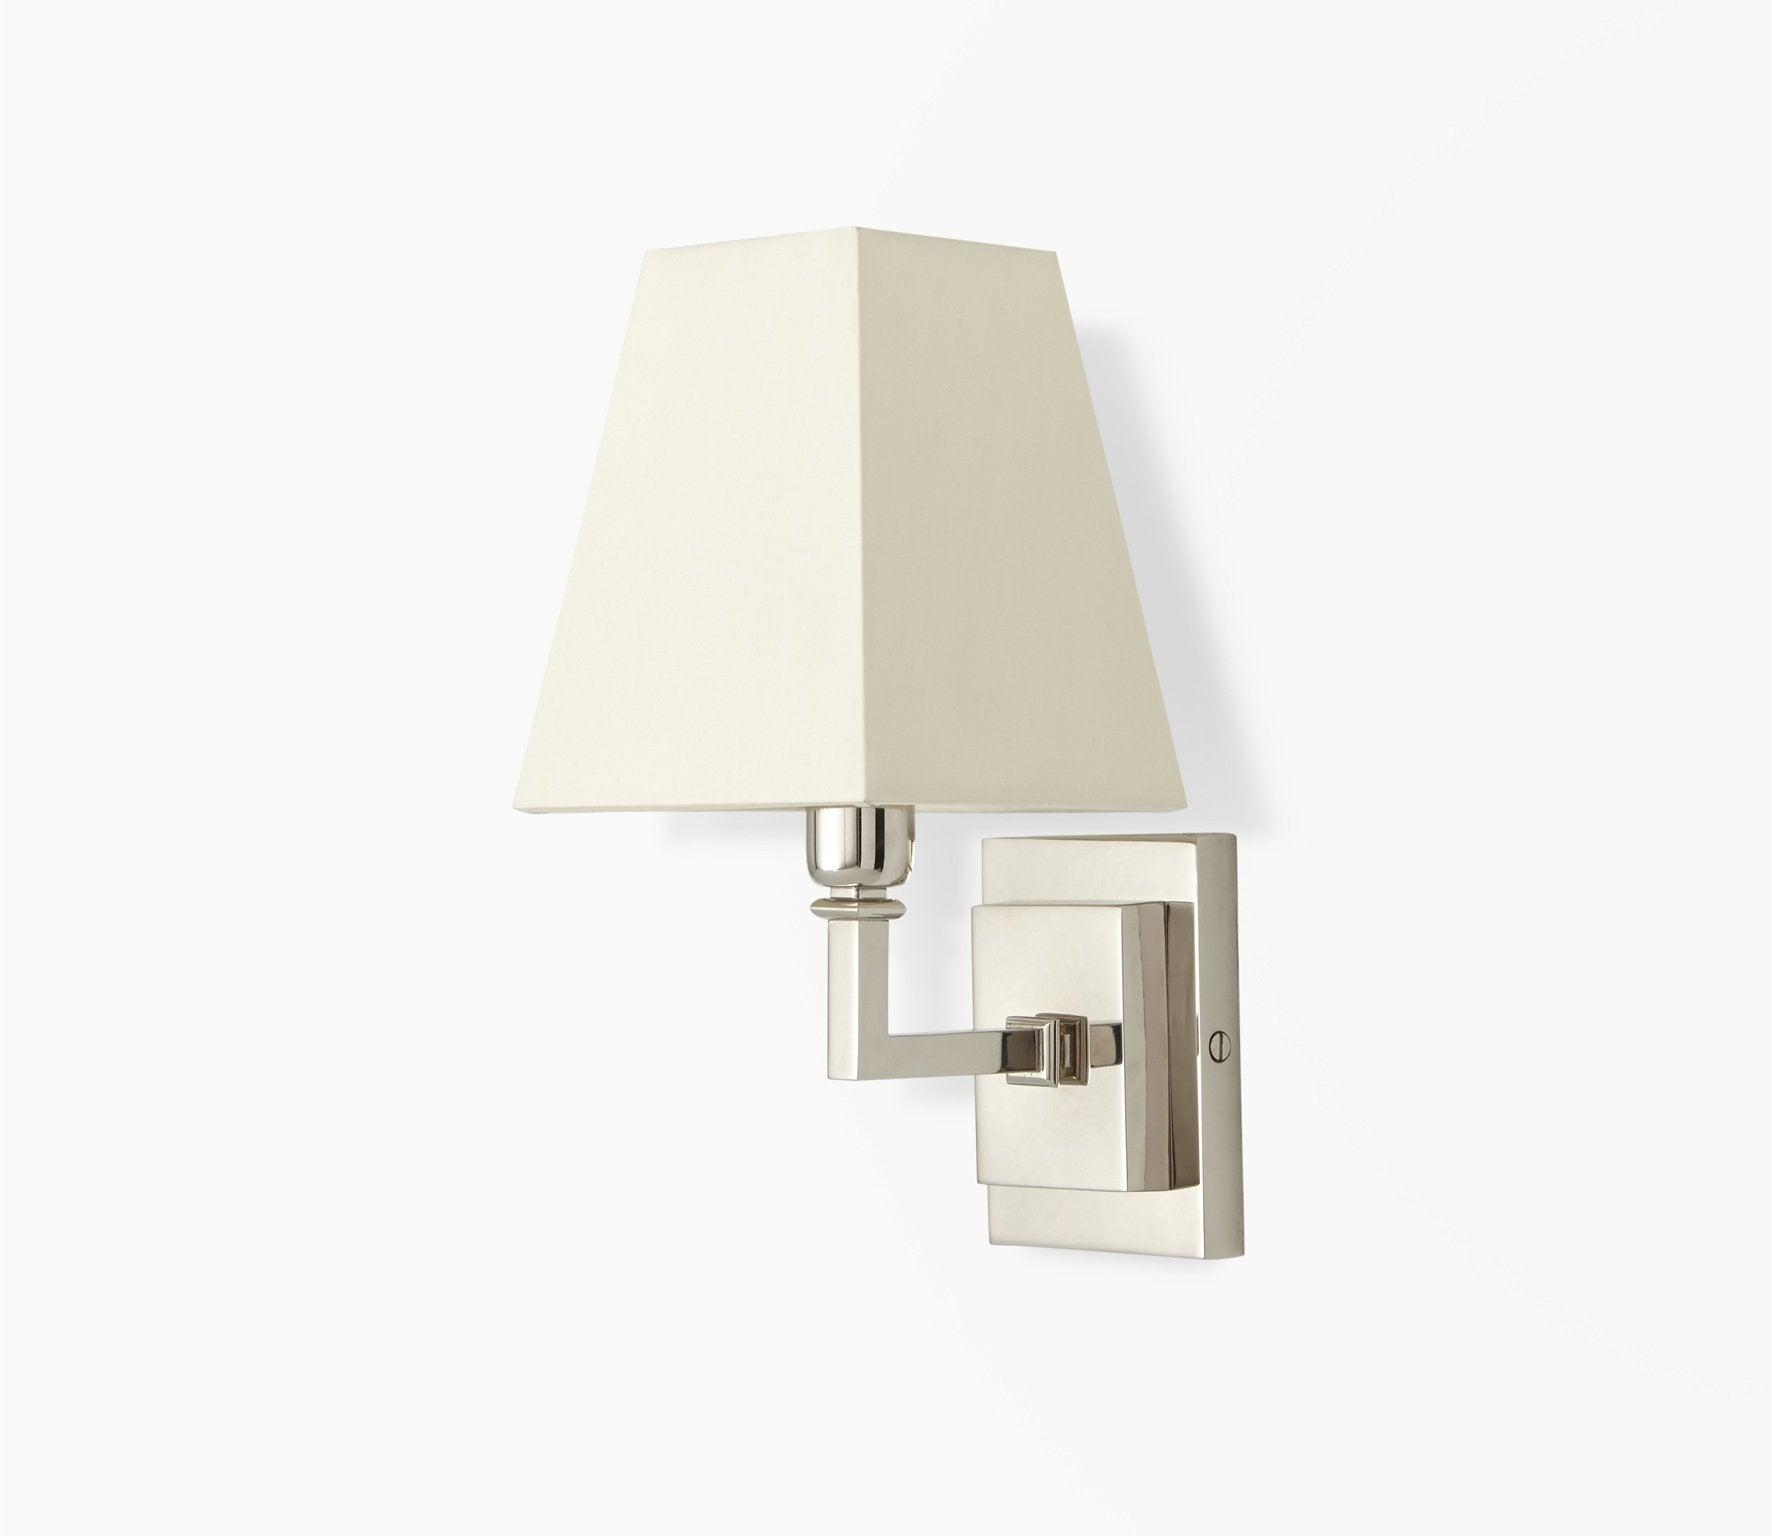 Parker Wall Light with Pyramid Shade Product Image 2